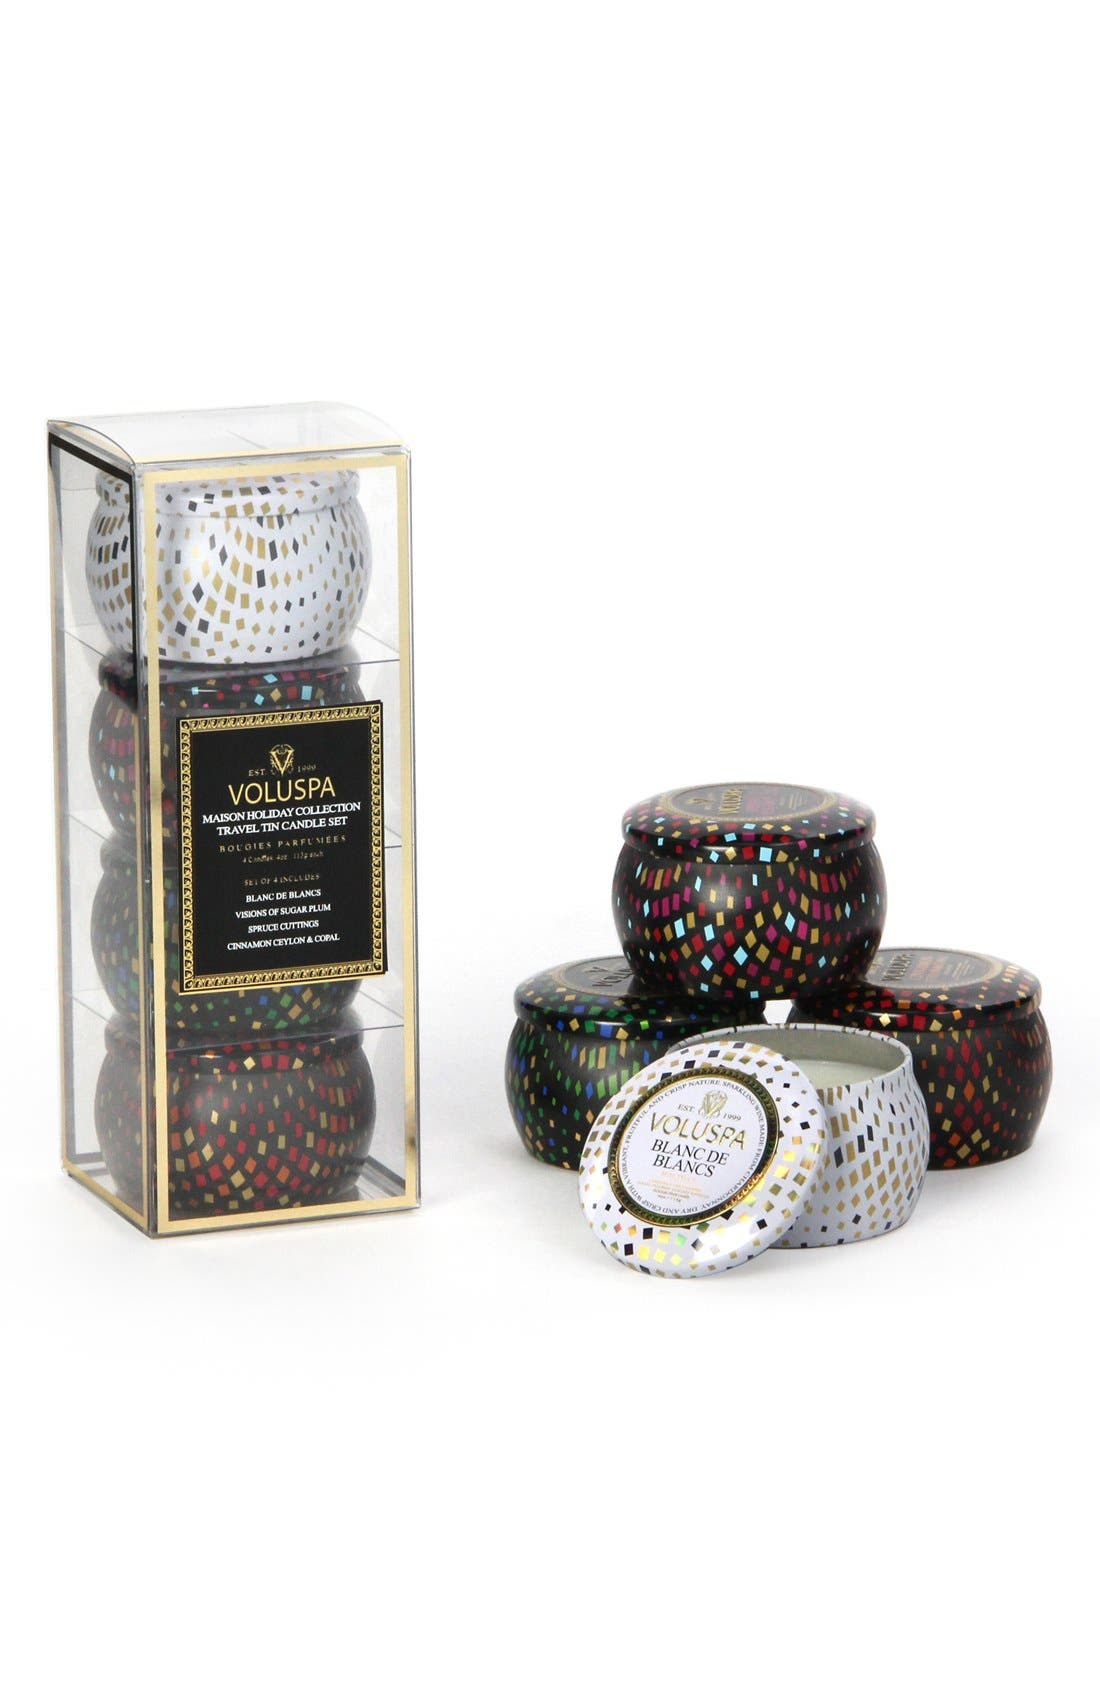 Voluspa Maison Travel Tin Candles (Set of 4)